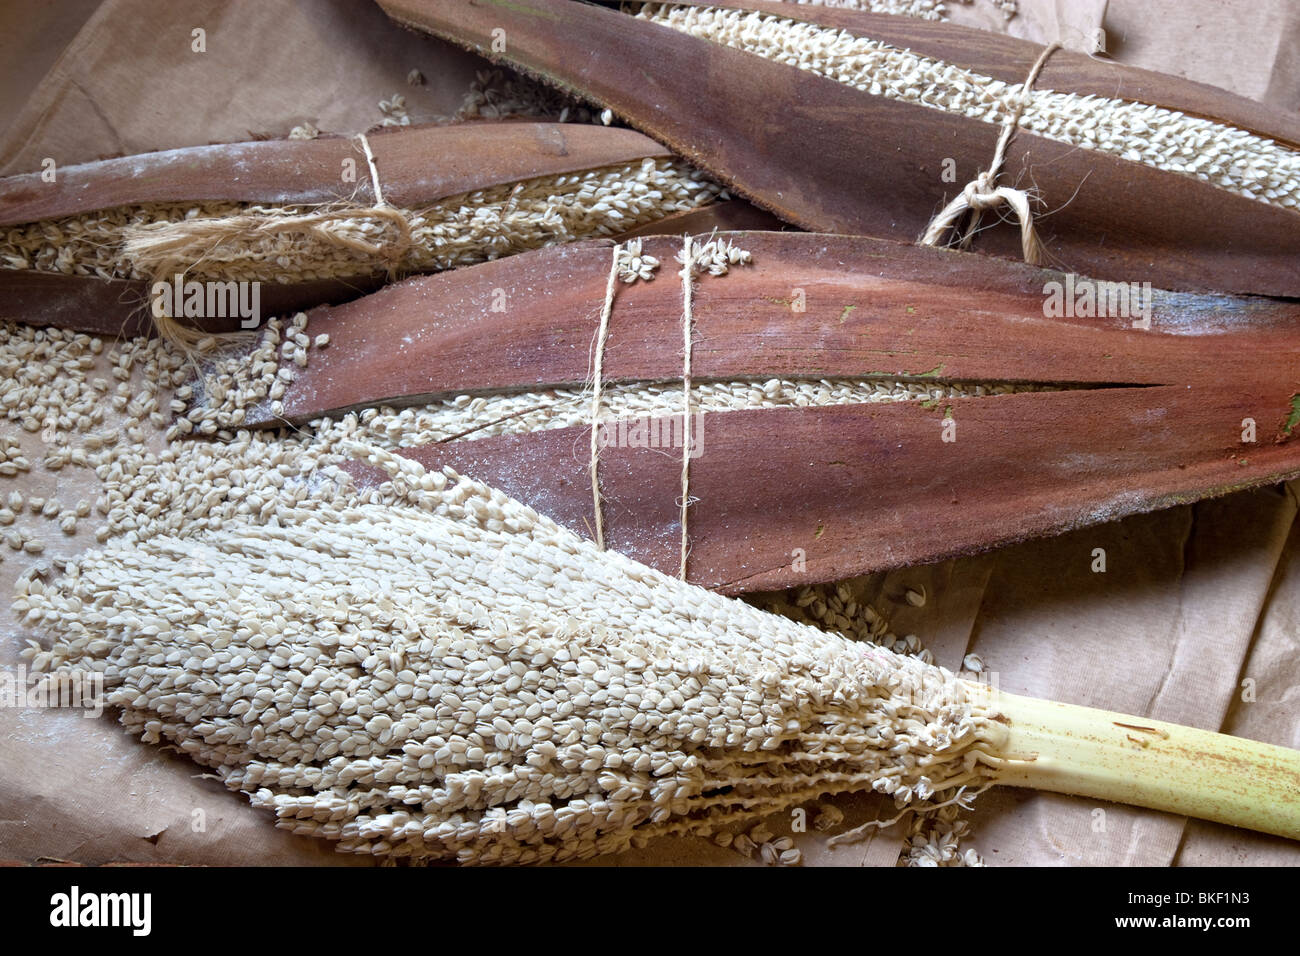 Male pollen pods of Date Palm, drying. - Stock Image